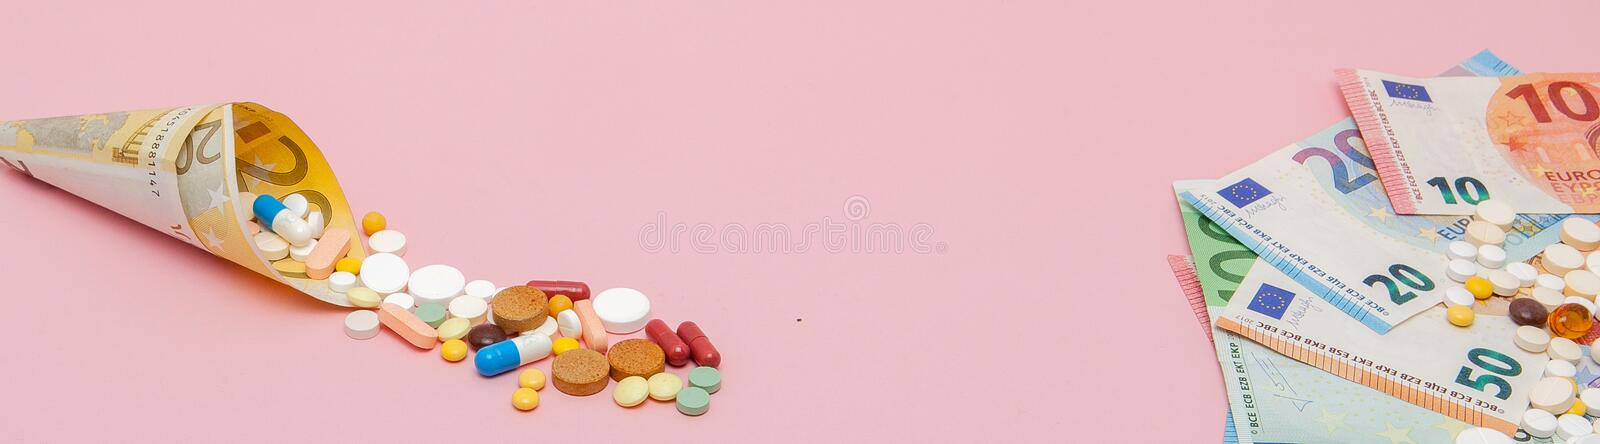 Medical pills and tablets in euro bank notes money as a symbol of health care costs. Concept of medicine, money and health.  royalty free stock photo